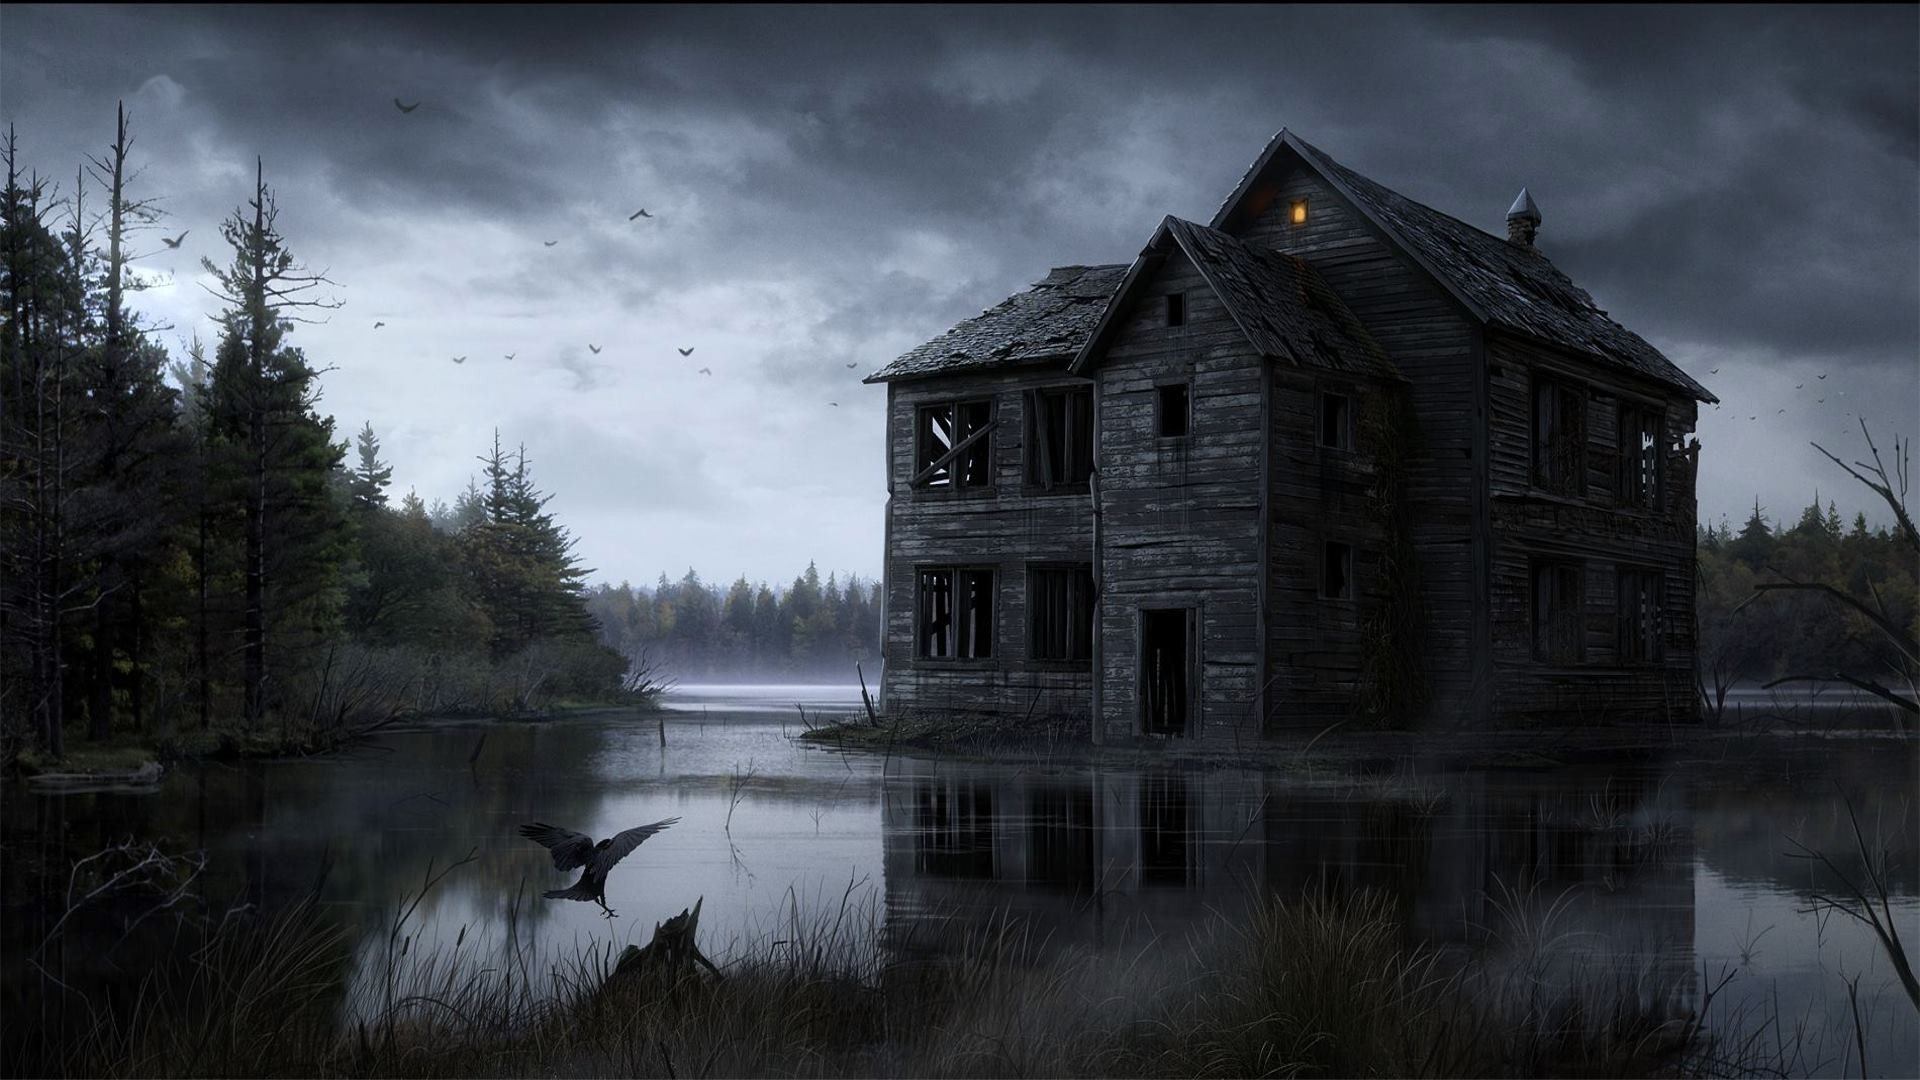 General 1920x1080 house water drawing fantasy art artwork lake ruin spooky digital art clouds crow pine trees forest